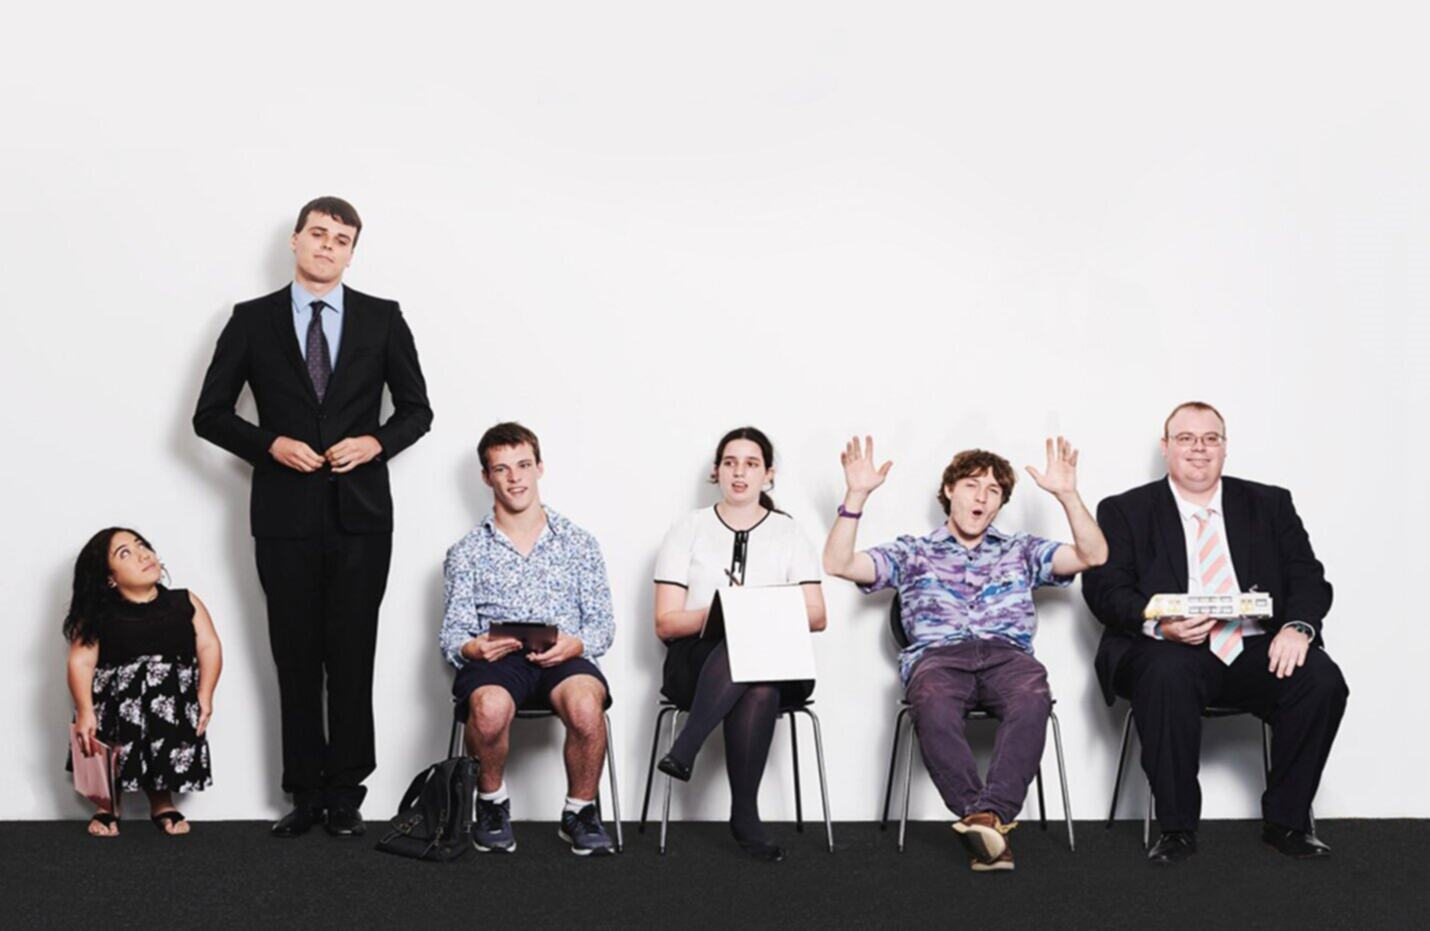 Photo of 6 job seekers shown on ABC's Employable Me sitting in a row. Paul is on the right, in a suit and holding a train.